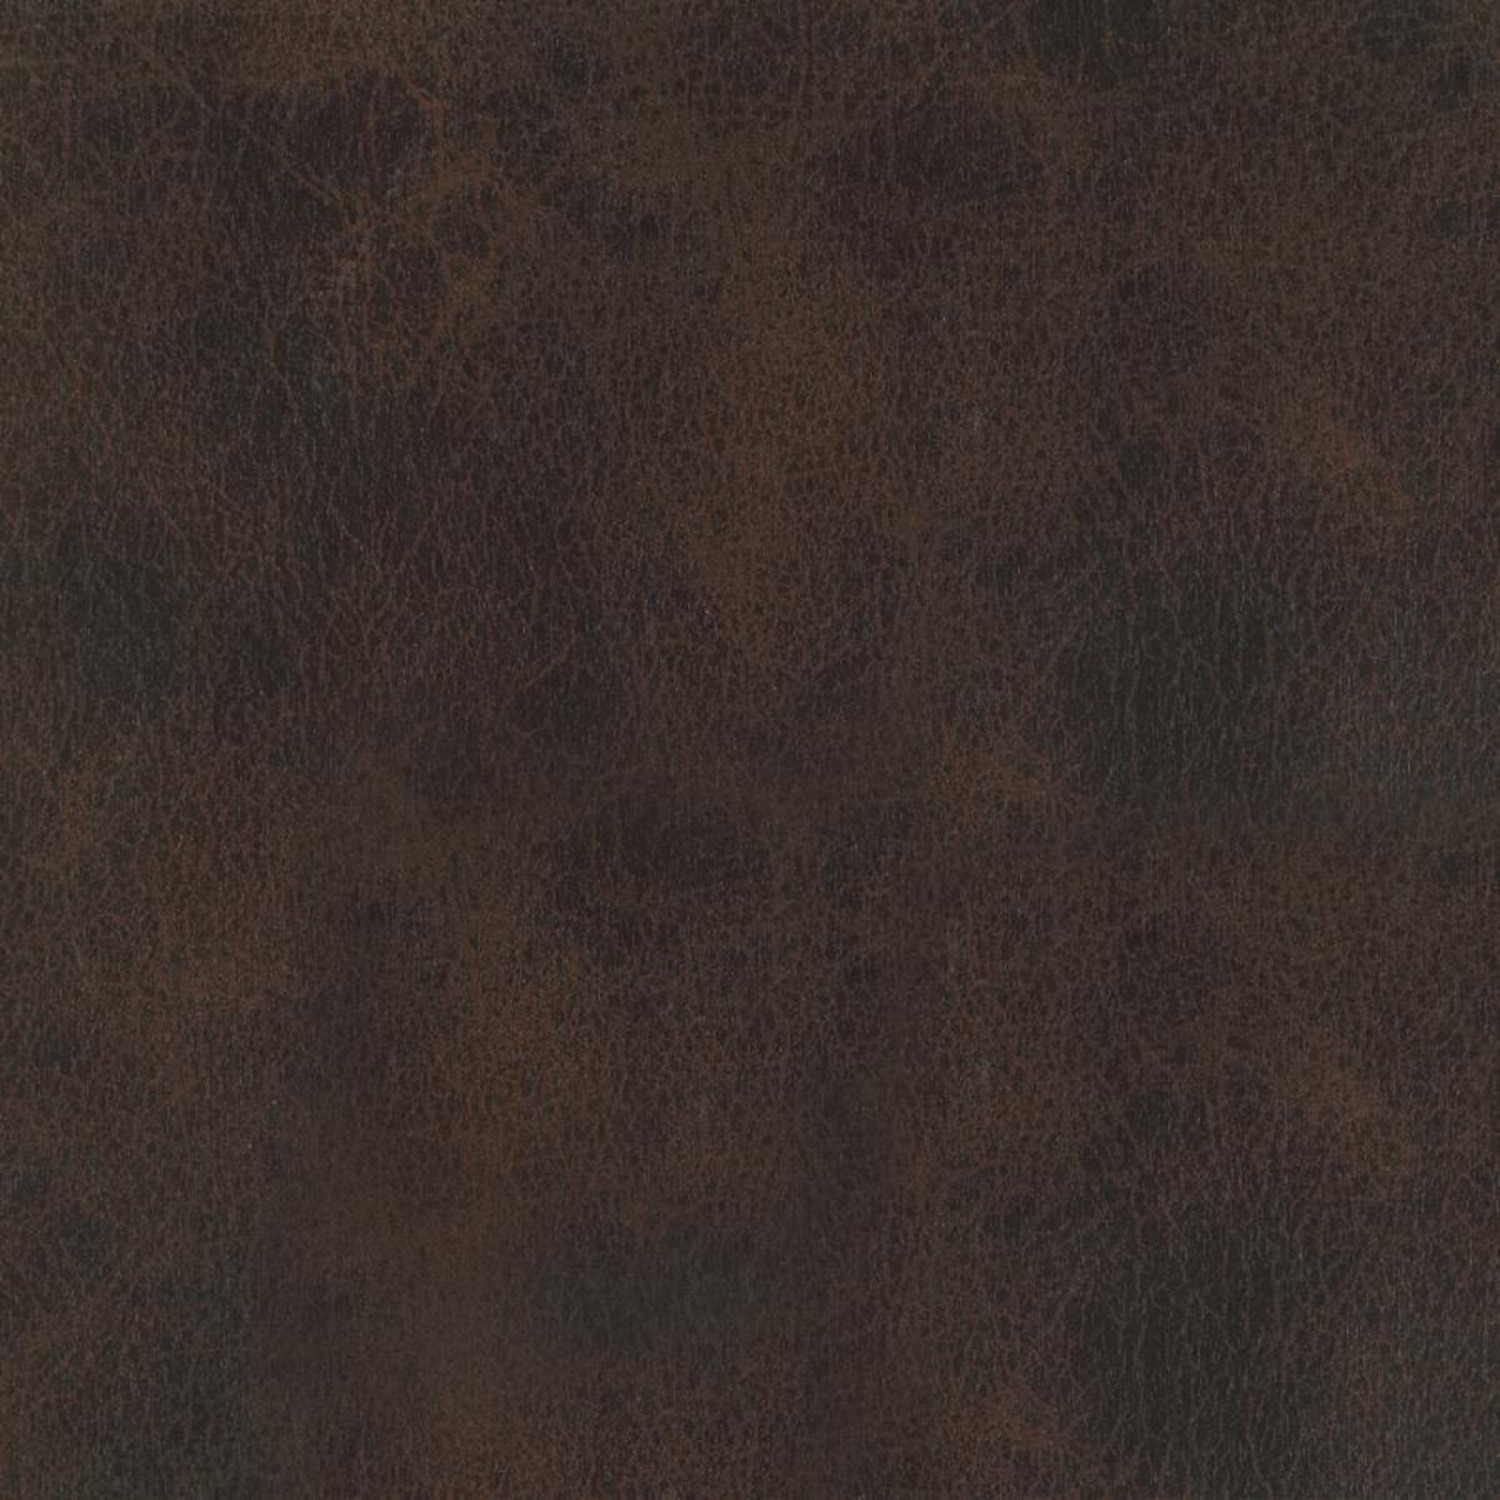 Power2 Sofa In Rich Brown Faux Suede - image-6